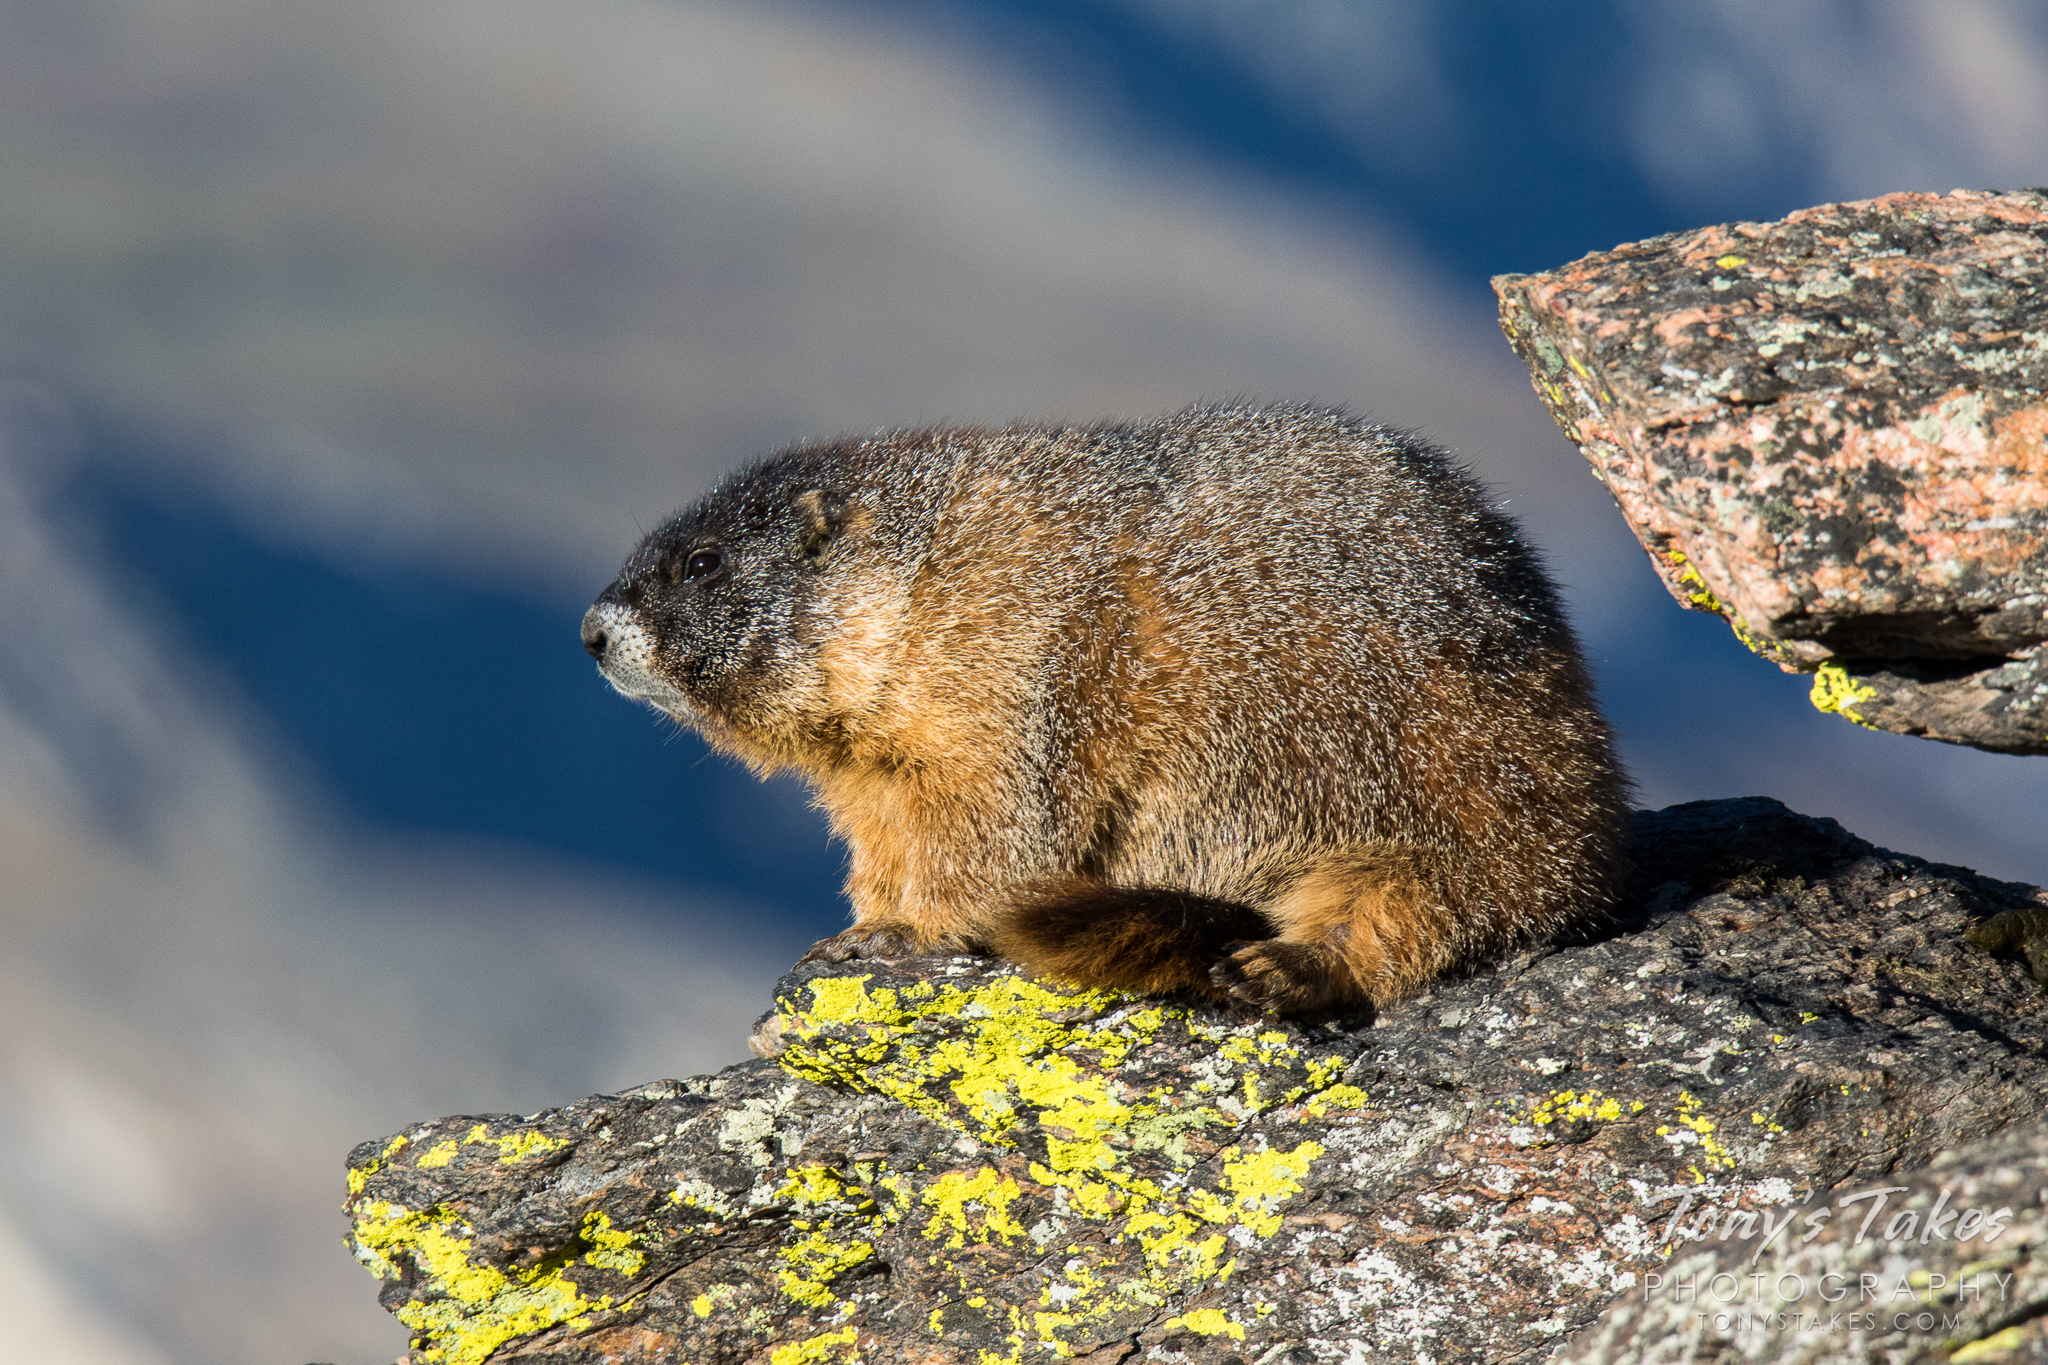 A grumpy-looking marmot in Rocky Mountain National Park, Colorado. (© Tony's Takes)